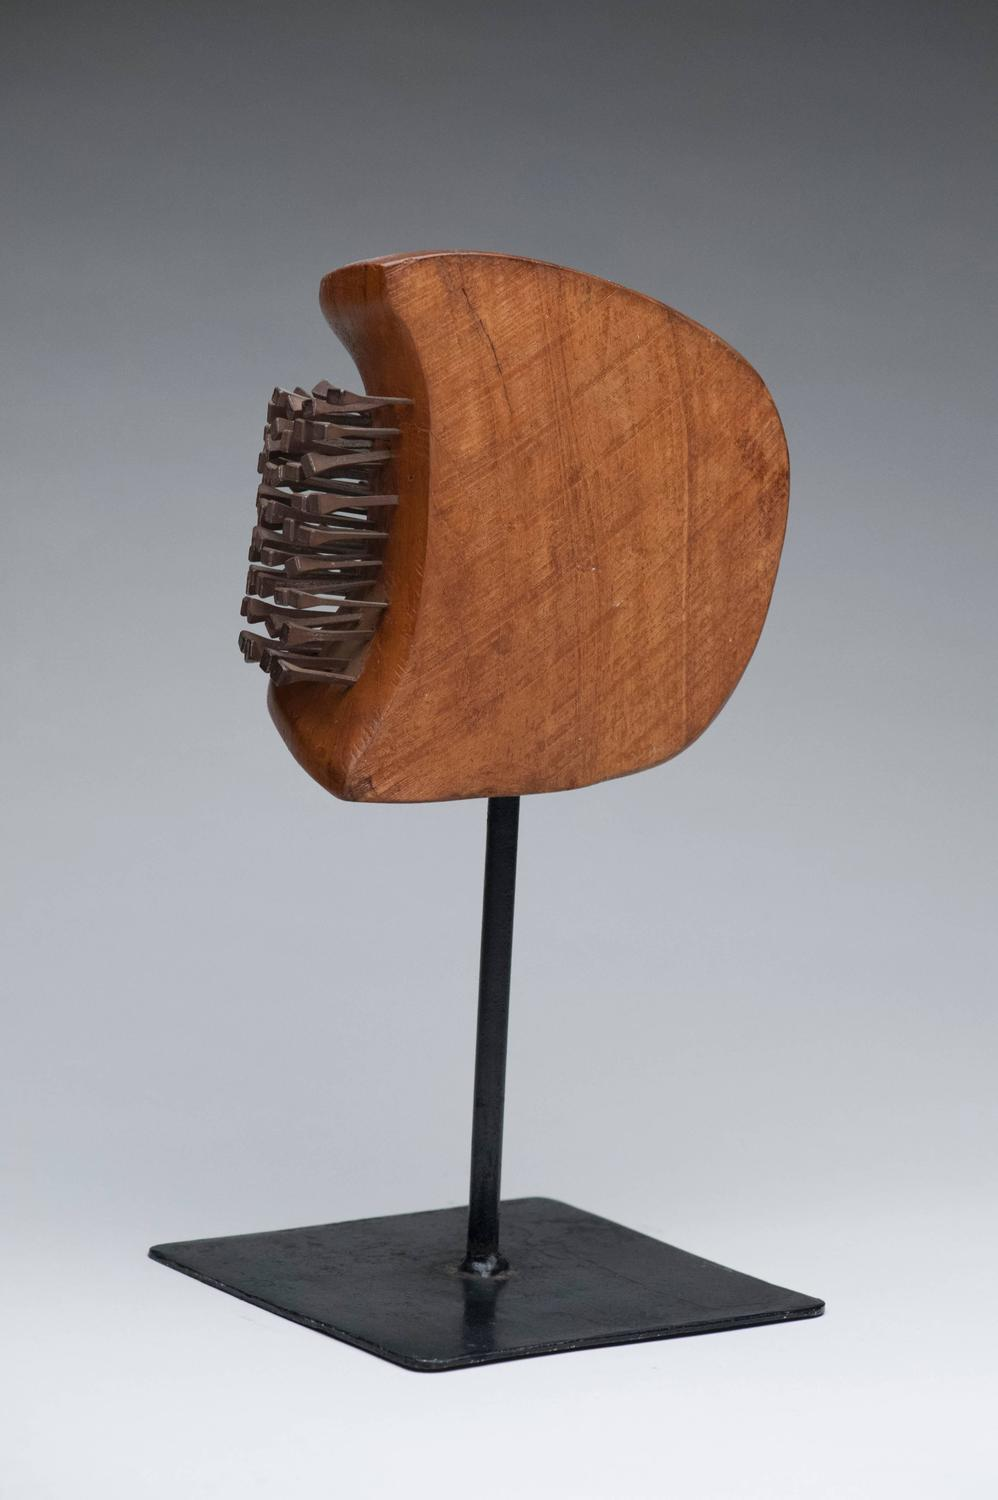 Wood And Nail Modern Abstract Sculpture For Sale At 1stdibs